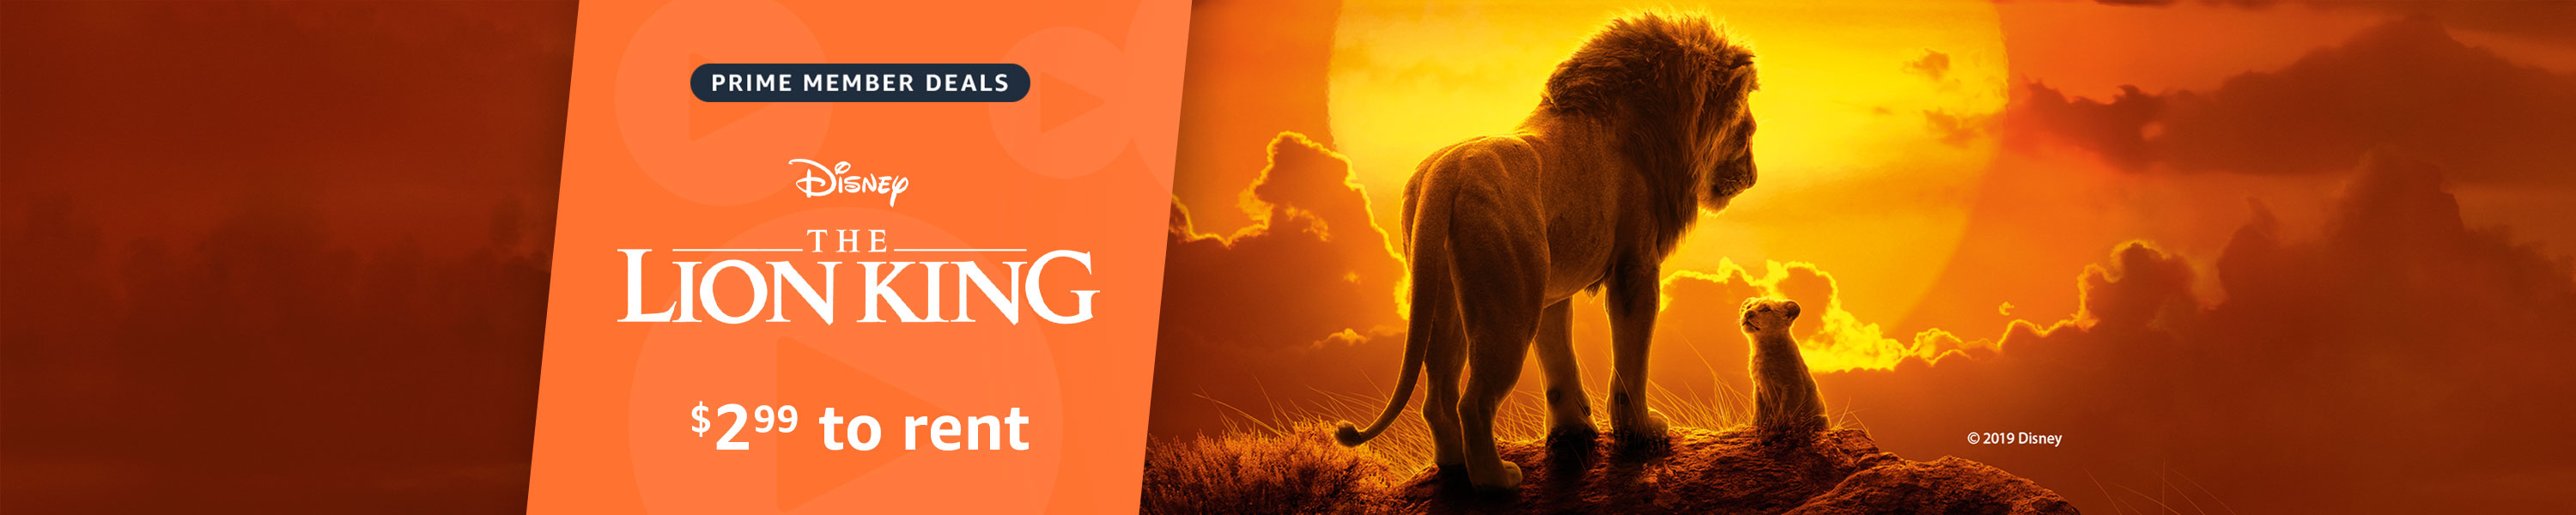 The Lion King on sale